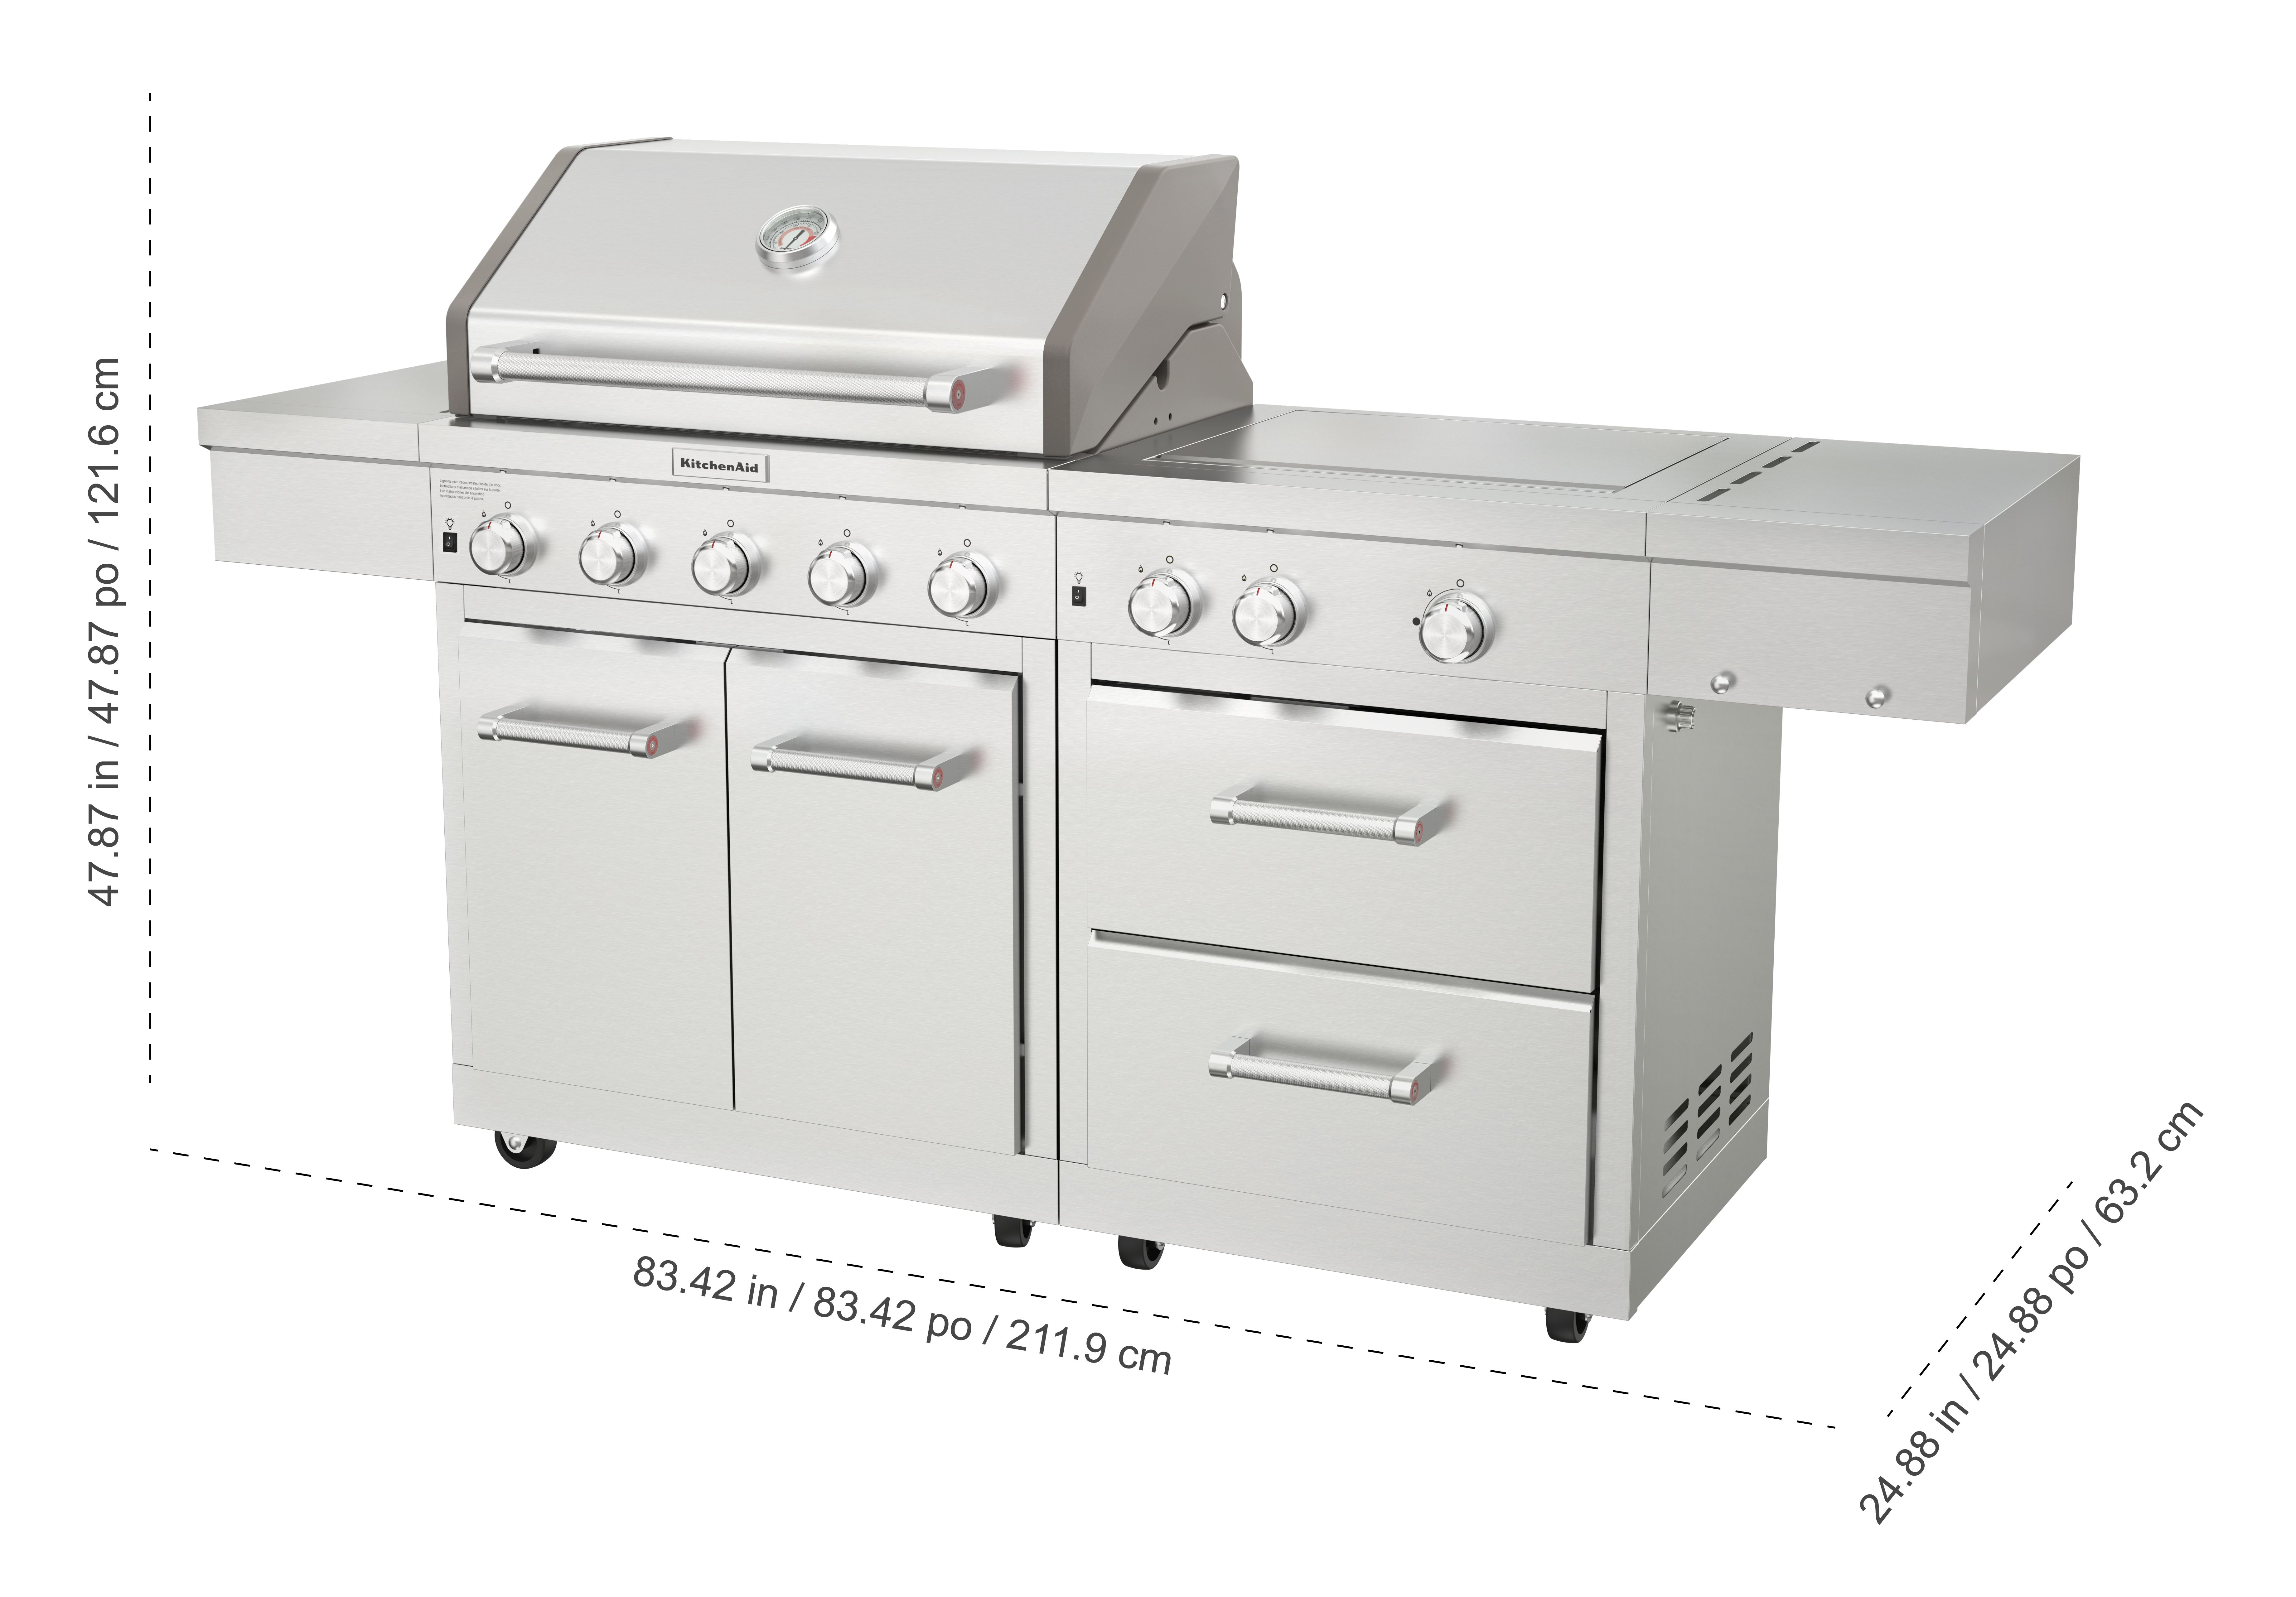 Details about KitchenAid Stainless Steel 8-Burner Grill